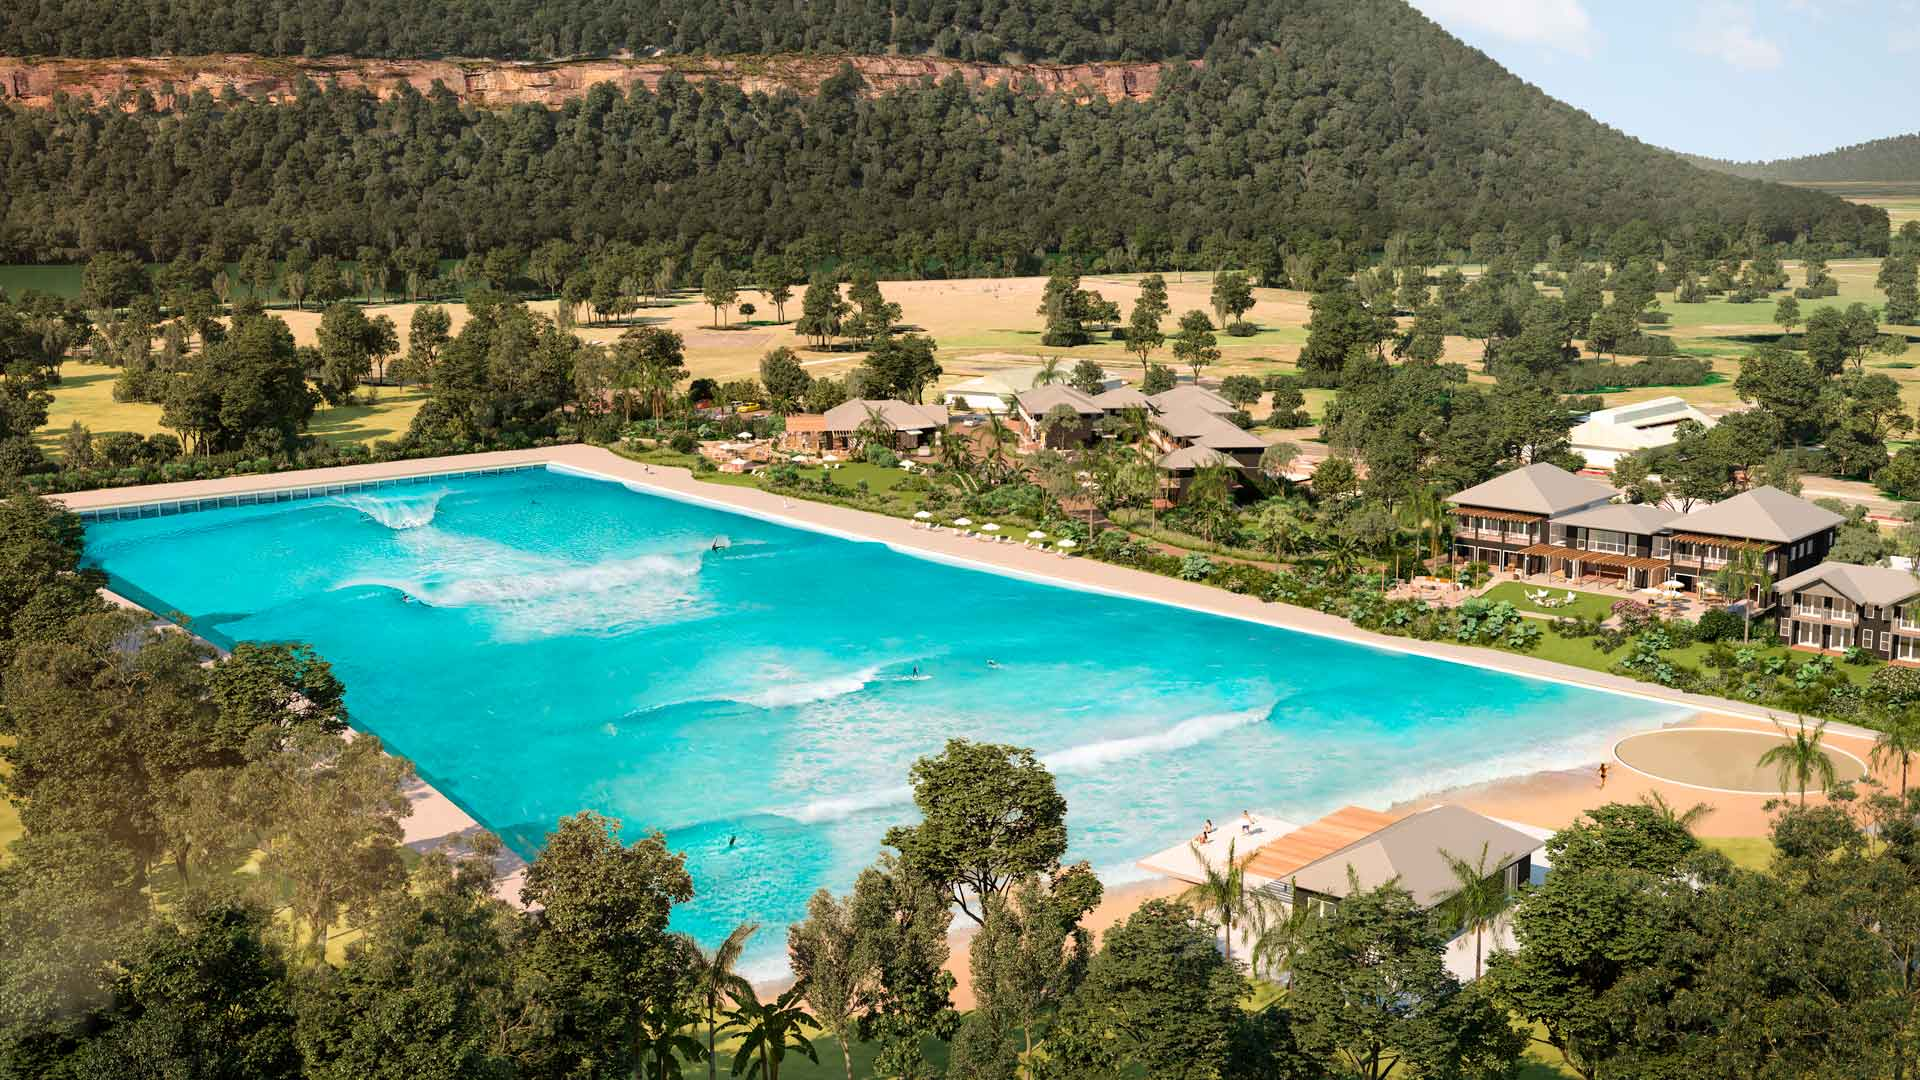 Wisemans Surf Lodge Is the Giant Wave Pool and Luxury Resort Set to Open in Sydney's North